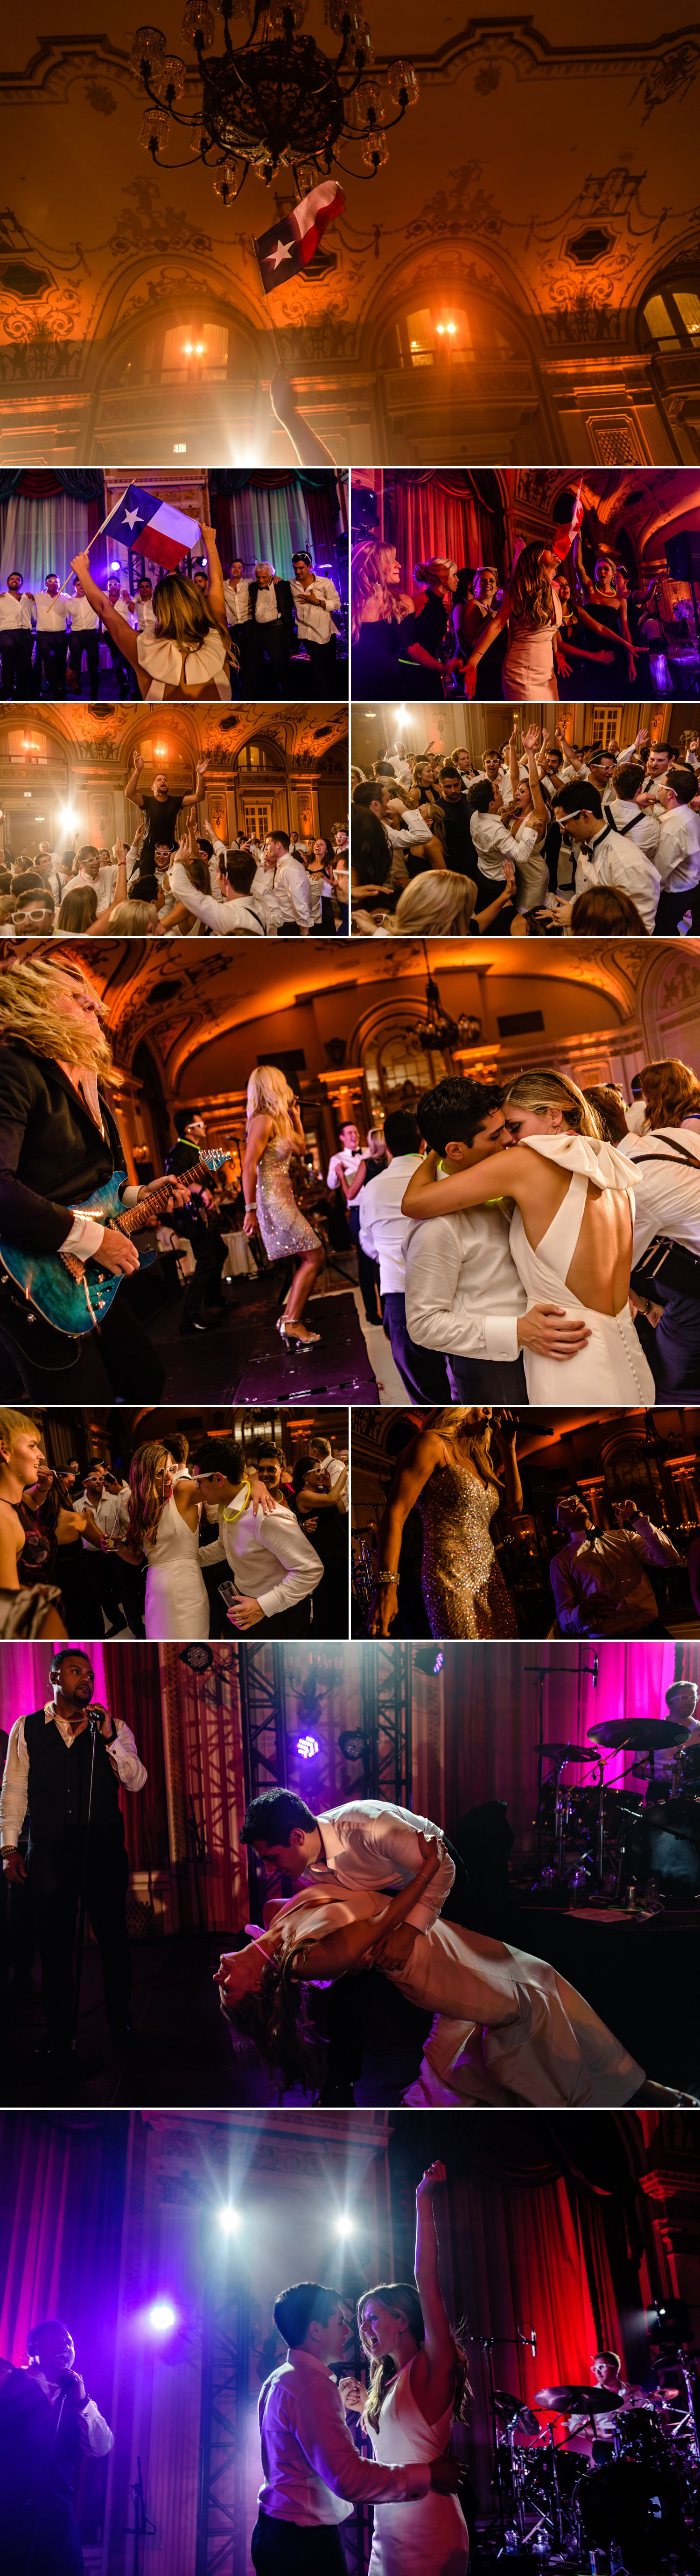 candid moments during a jewish wedding at the fairmont chateau laurier in ottawa on